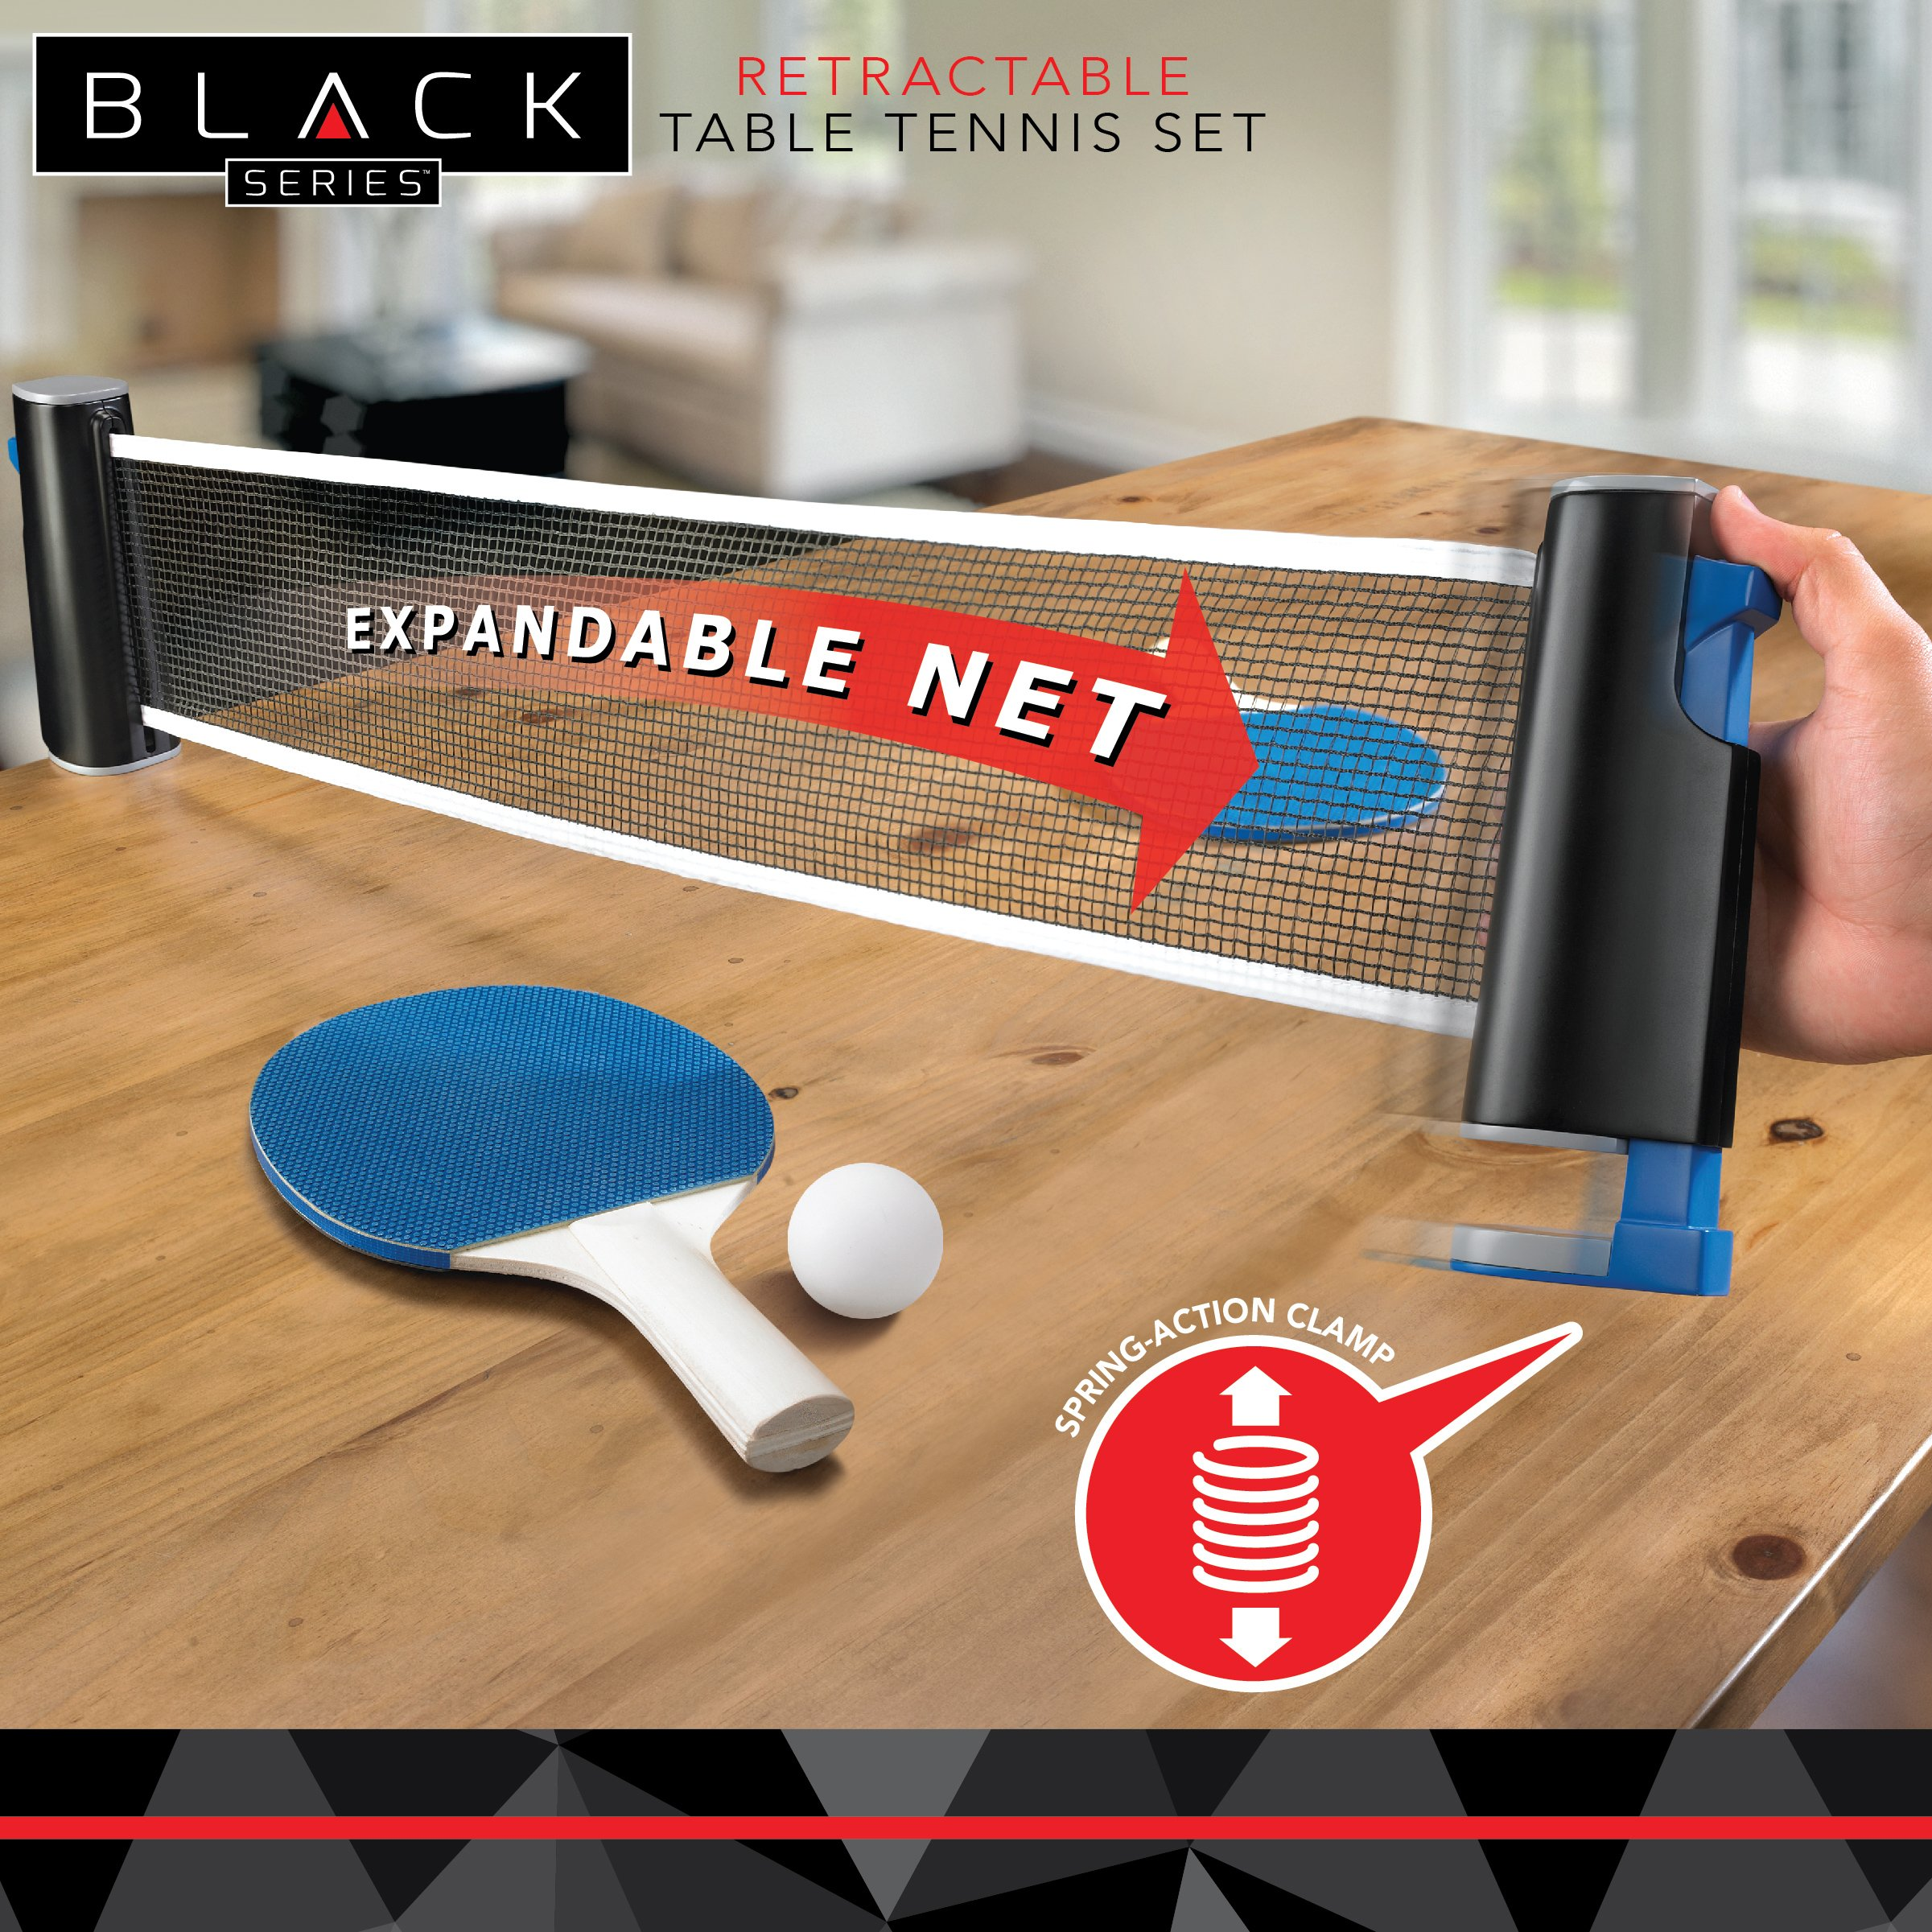 Black Series Retractable Table Tennis Ping Pong Equipment Set with  Paddle/Racket x2, Net and Post, Balls x3, Attaches to Any Dining Table Top,  for